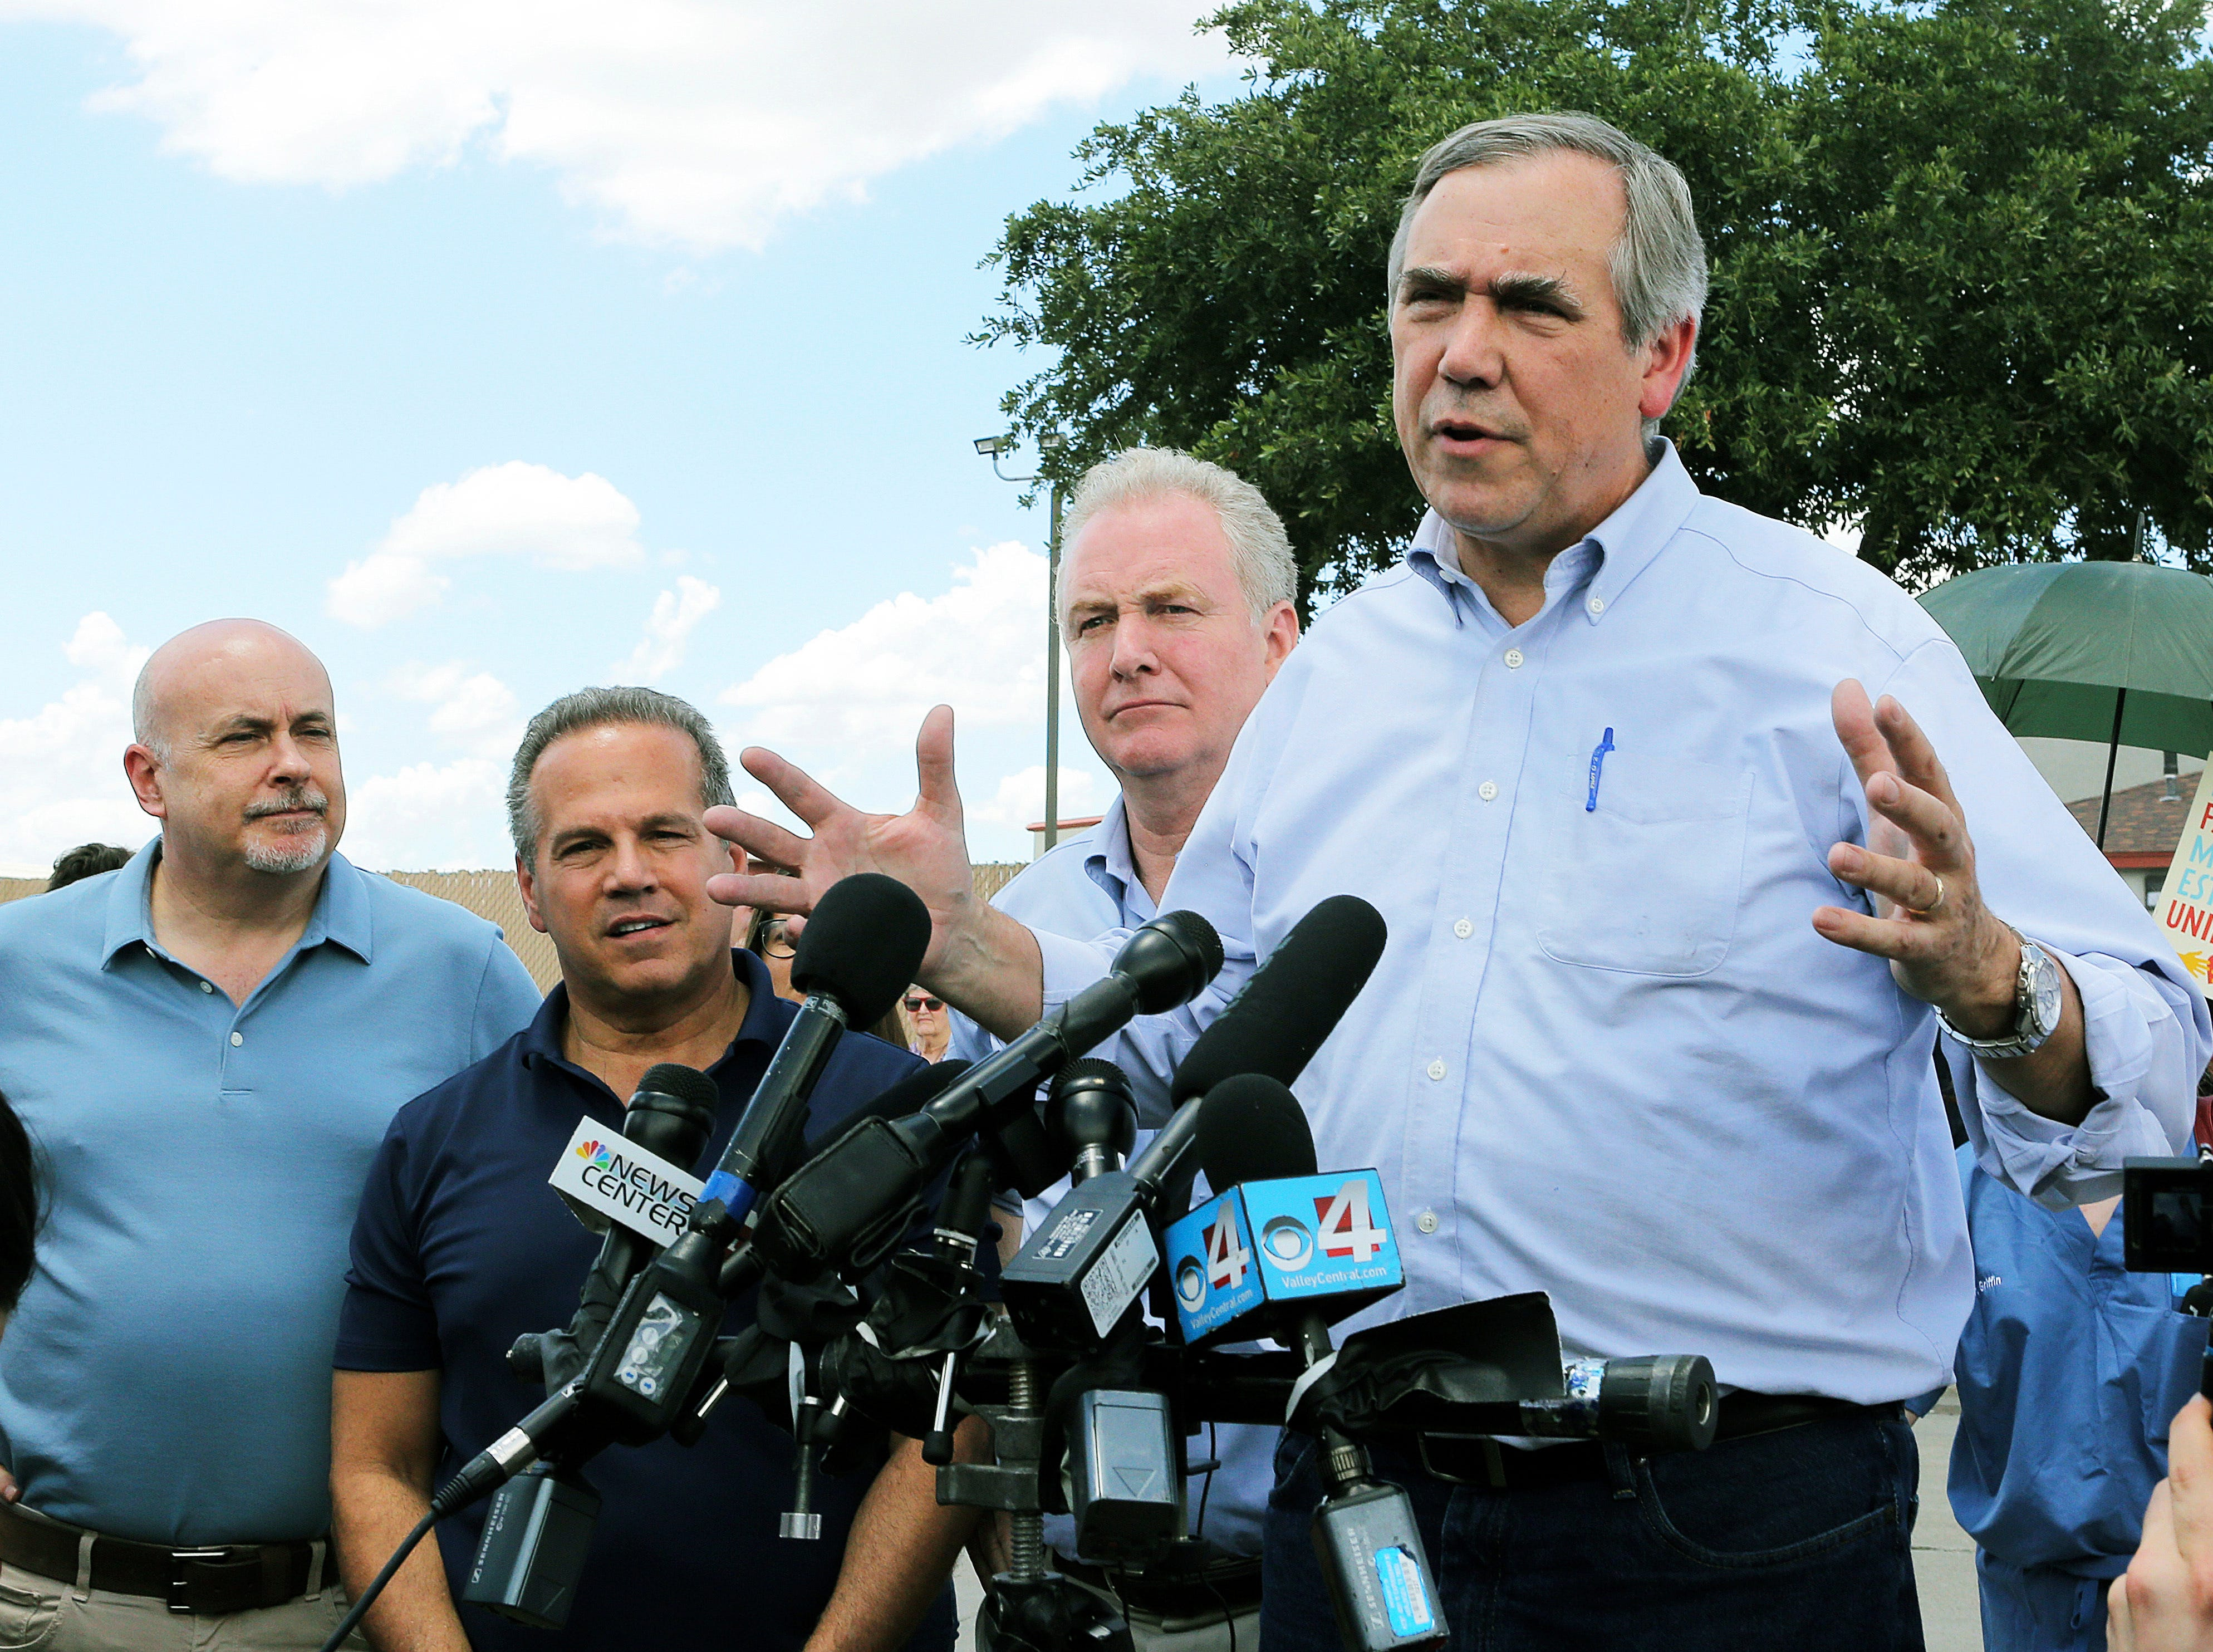 FILE - In this June 17, 2018, file photo, U.S. Sen. Jeff Merkley, D-Ore., speaks to the media, as U.S. Sen. Chris Van Hollen, center, D-Md., U.S. Rep. David Cicilline, D-R.I., and U.S. Rep. Mark Pocan, D-Wis., listen in front of the U.S. Customs and Border Protection's Rio Grande Valley Sector's Centralized Processing Center in McAllen, Texas. Merkley, a frequent critic of President Donald Trump, is seriously considering a run for the White House